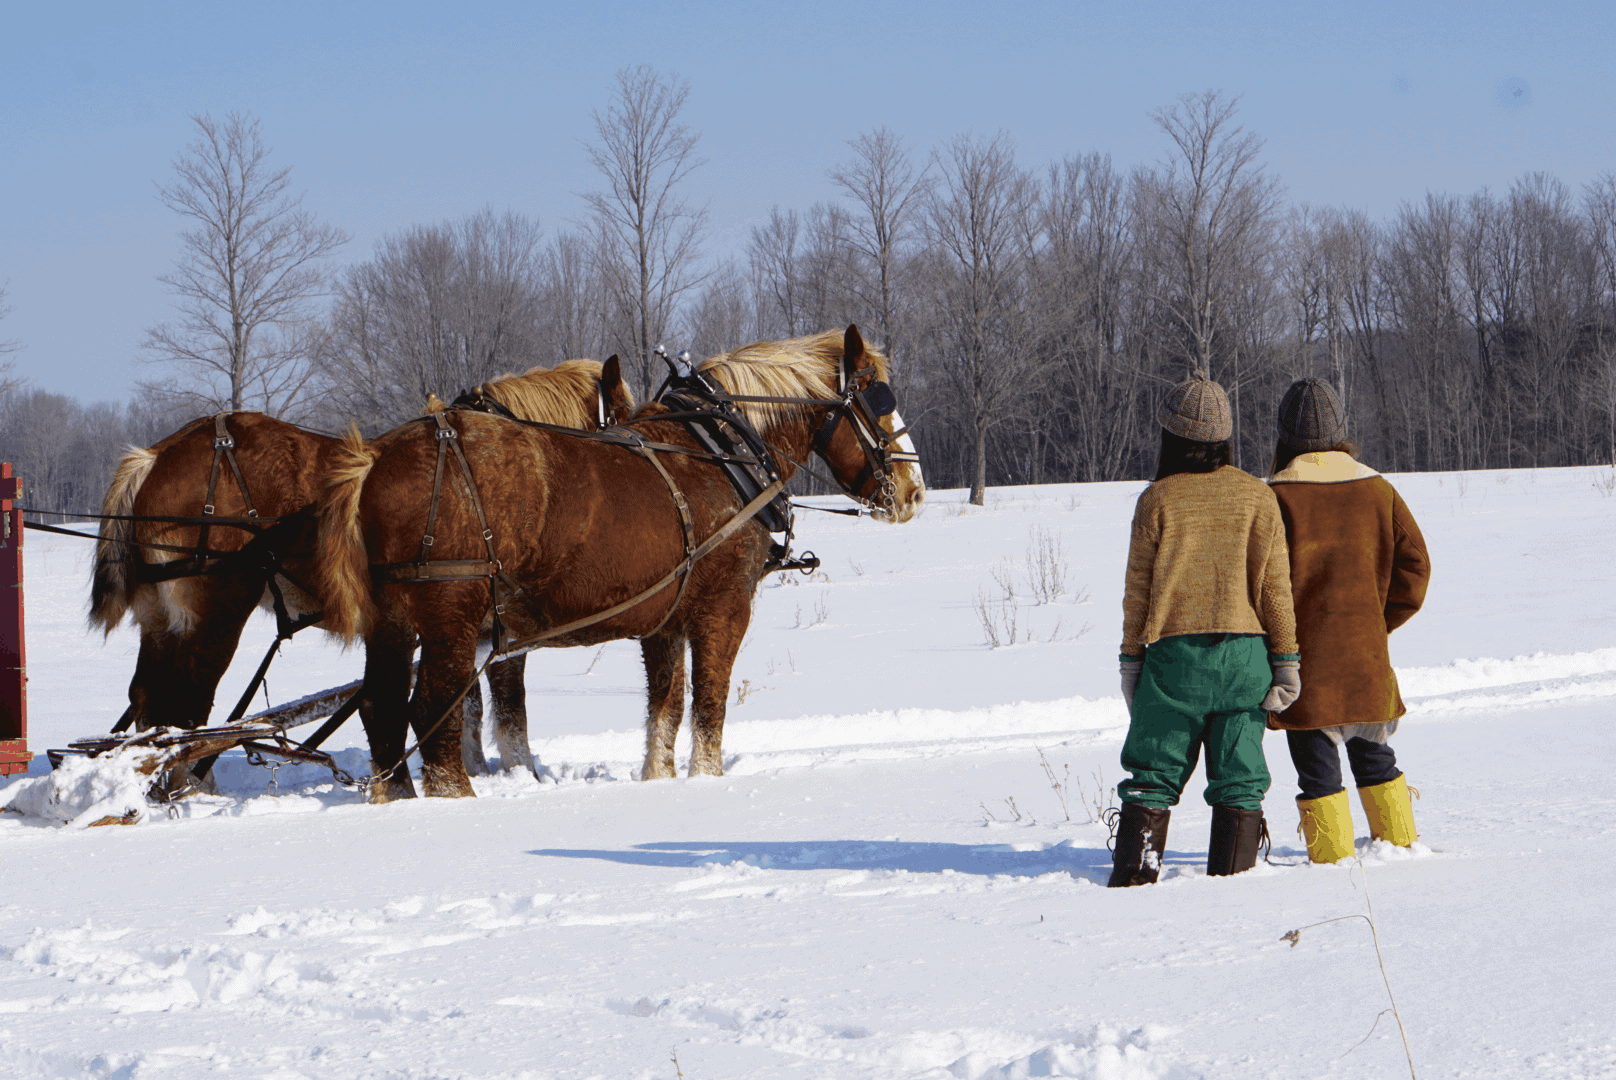 Two people wearing knitted items stand in snow next to horses.